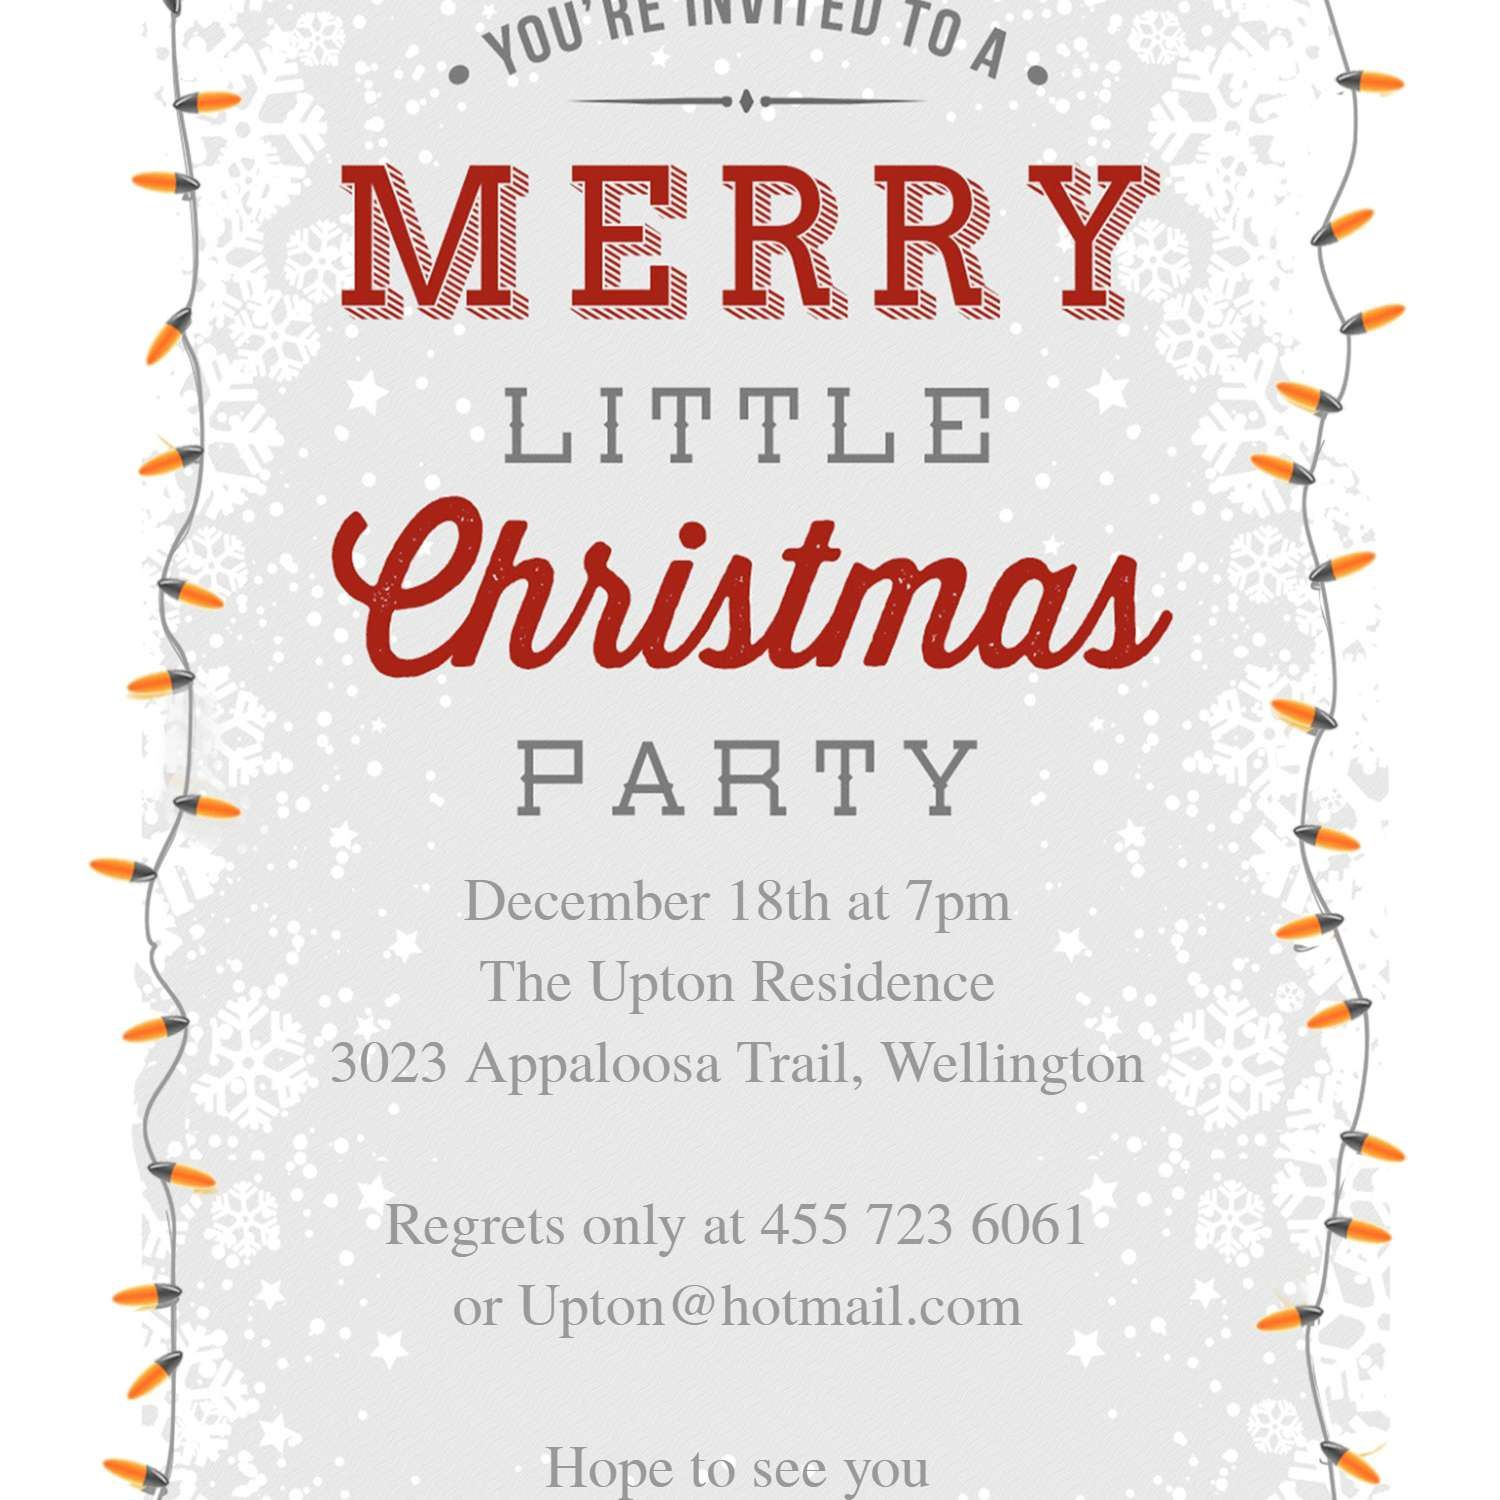 004 Unique Free Luncheon Invitation Template For Word High Resolution  Holiday Party BrunchFull